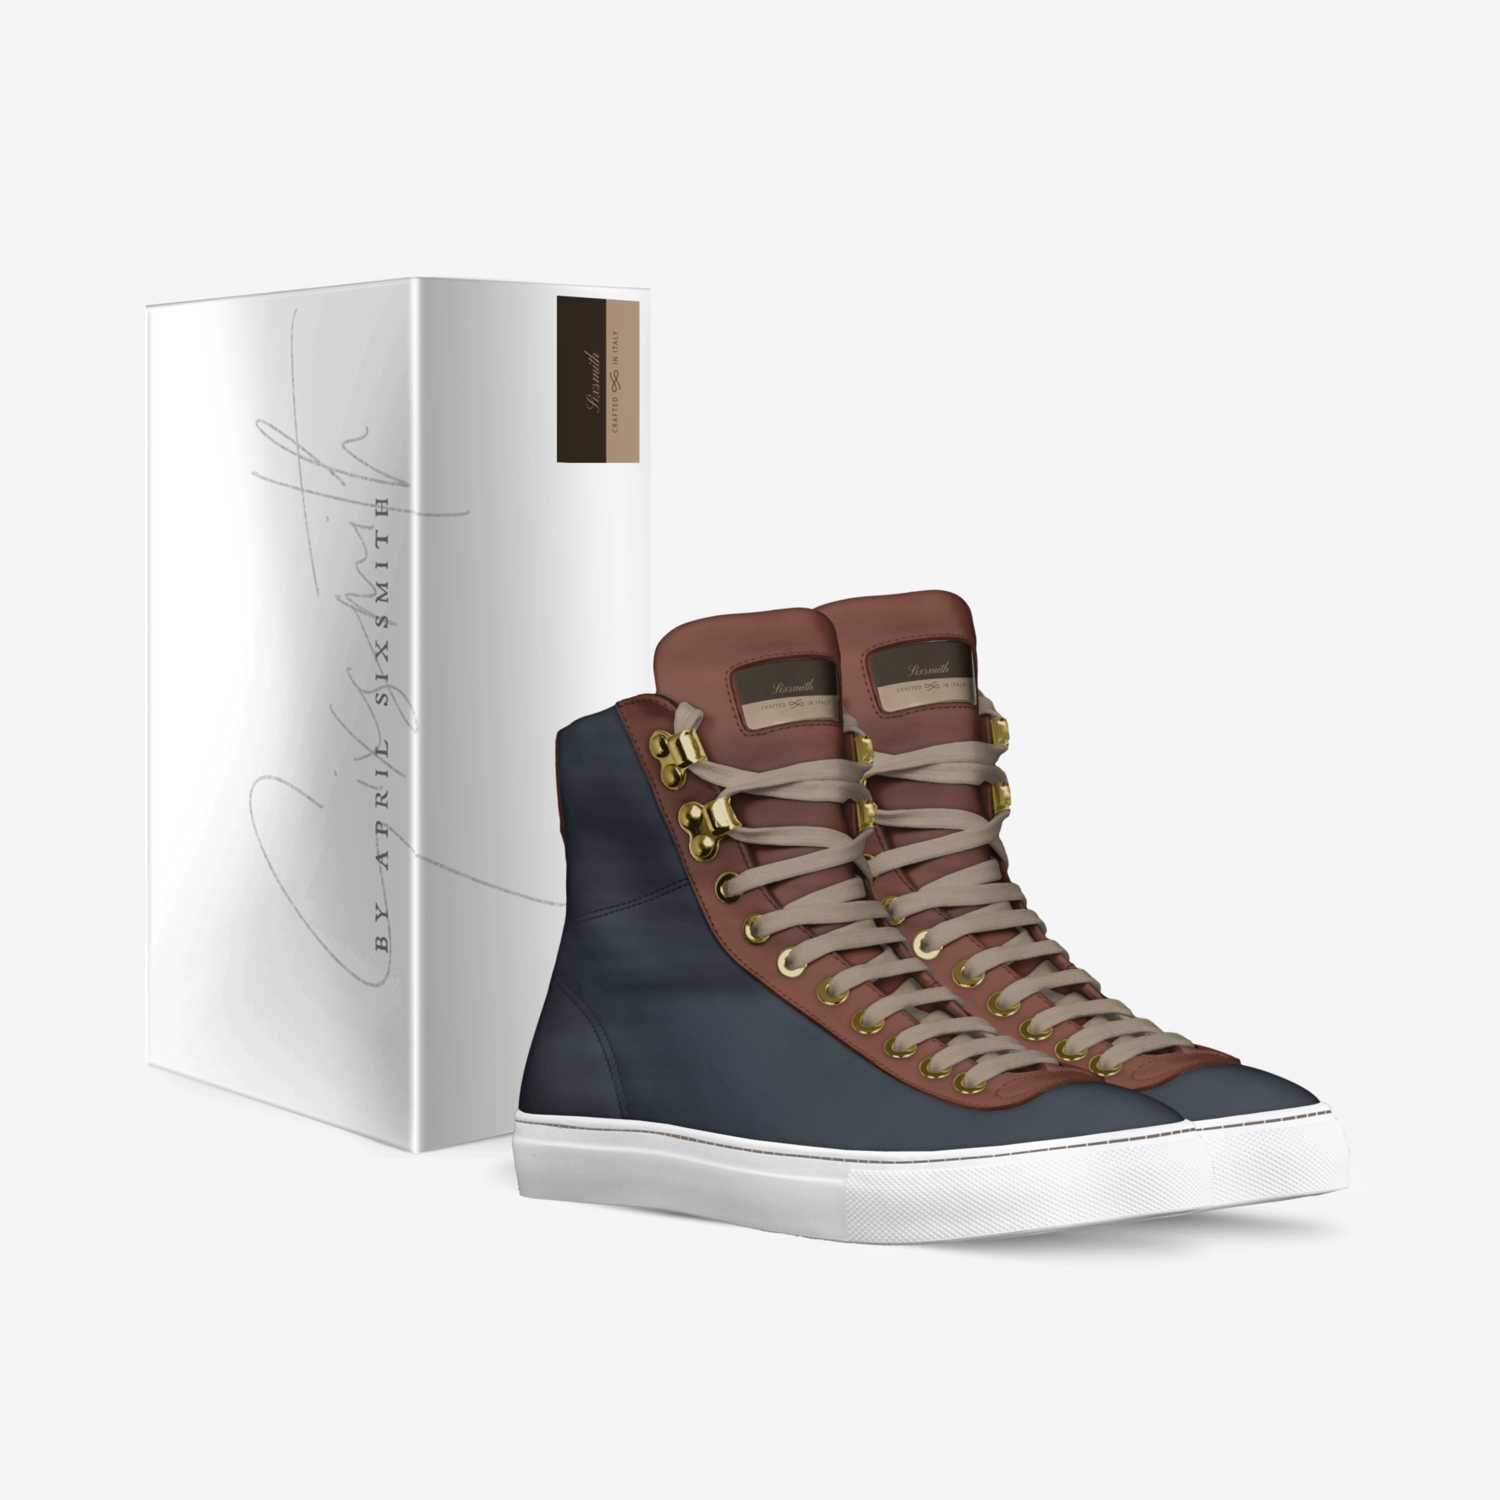 Sixsmith custom made in Italy shoes by April Sixsmith | Box view